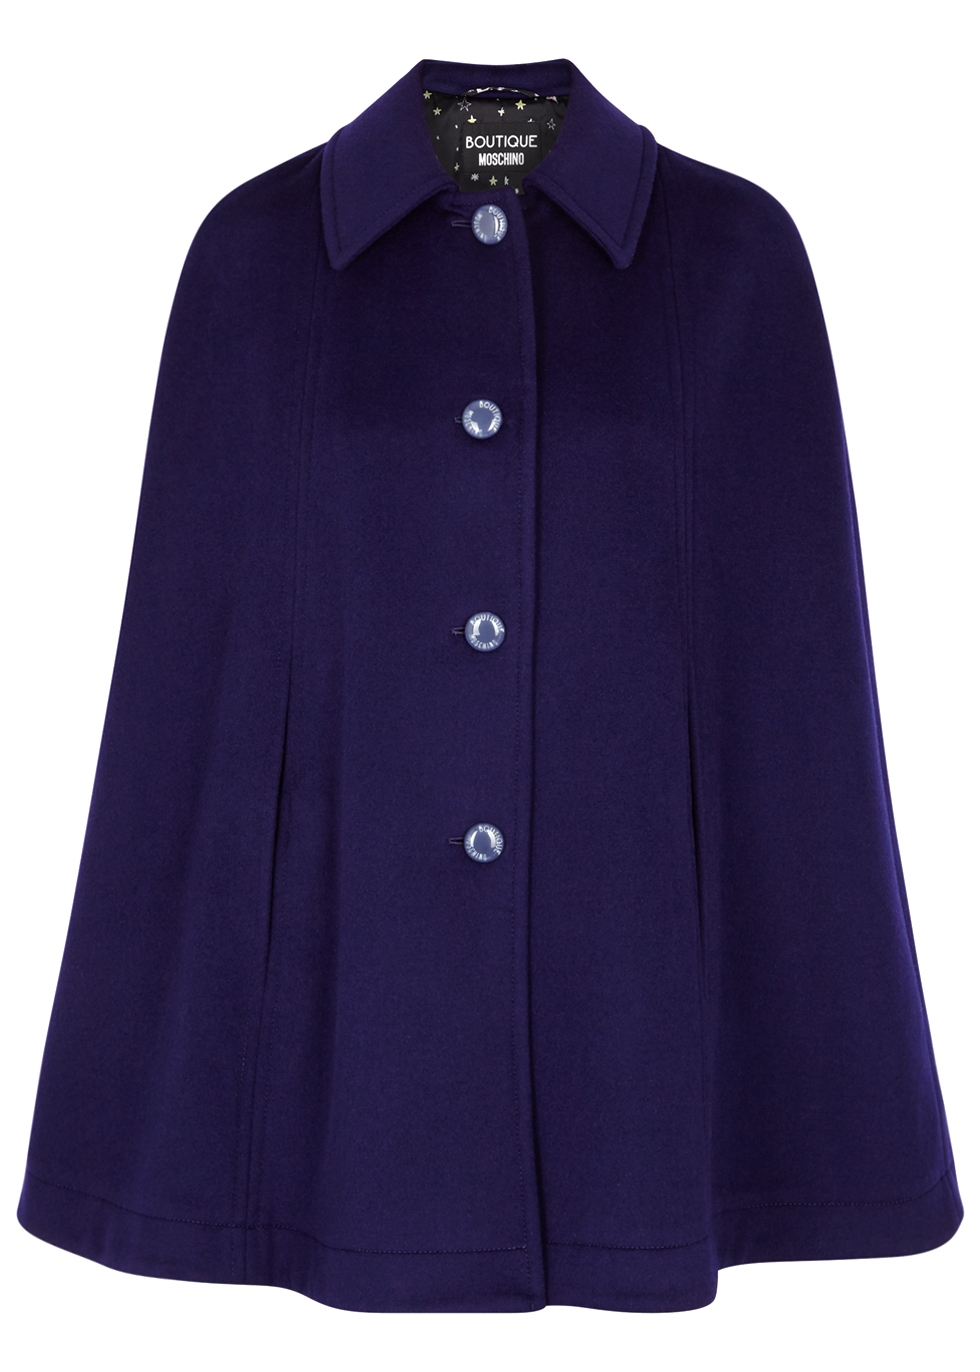 BOUTIQUE MOSCHINO NAVY WOOL-BLEND CAPE